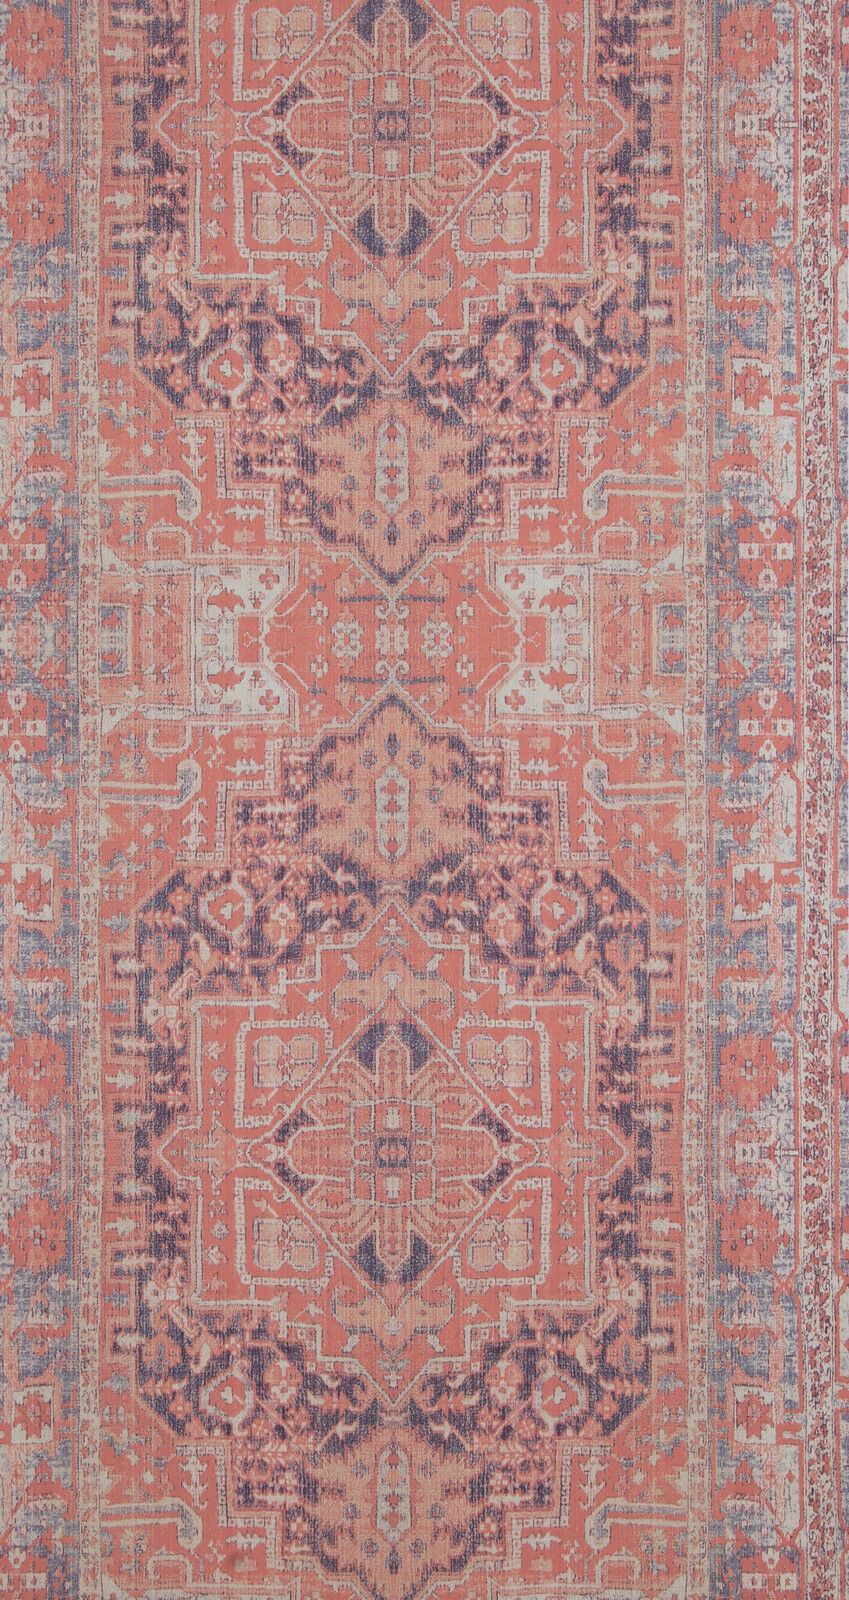 vlies tapete orientalisches wandteppich muster rose rot ethno look 218034 perser 2 - Tapete Rot Muster